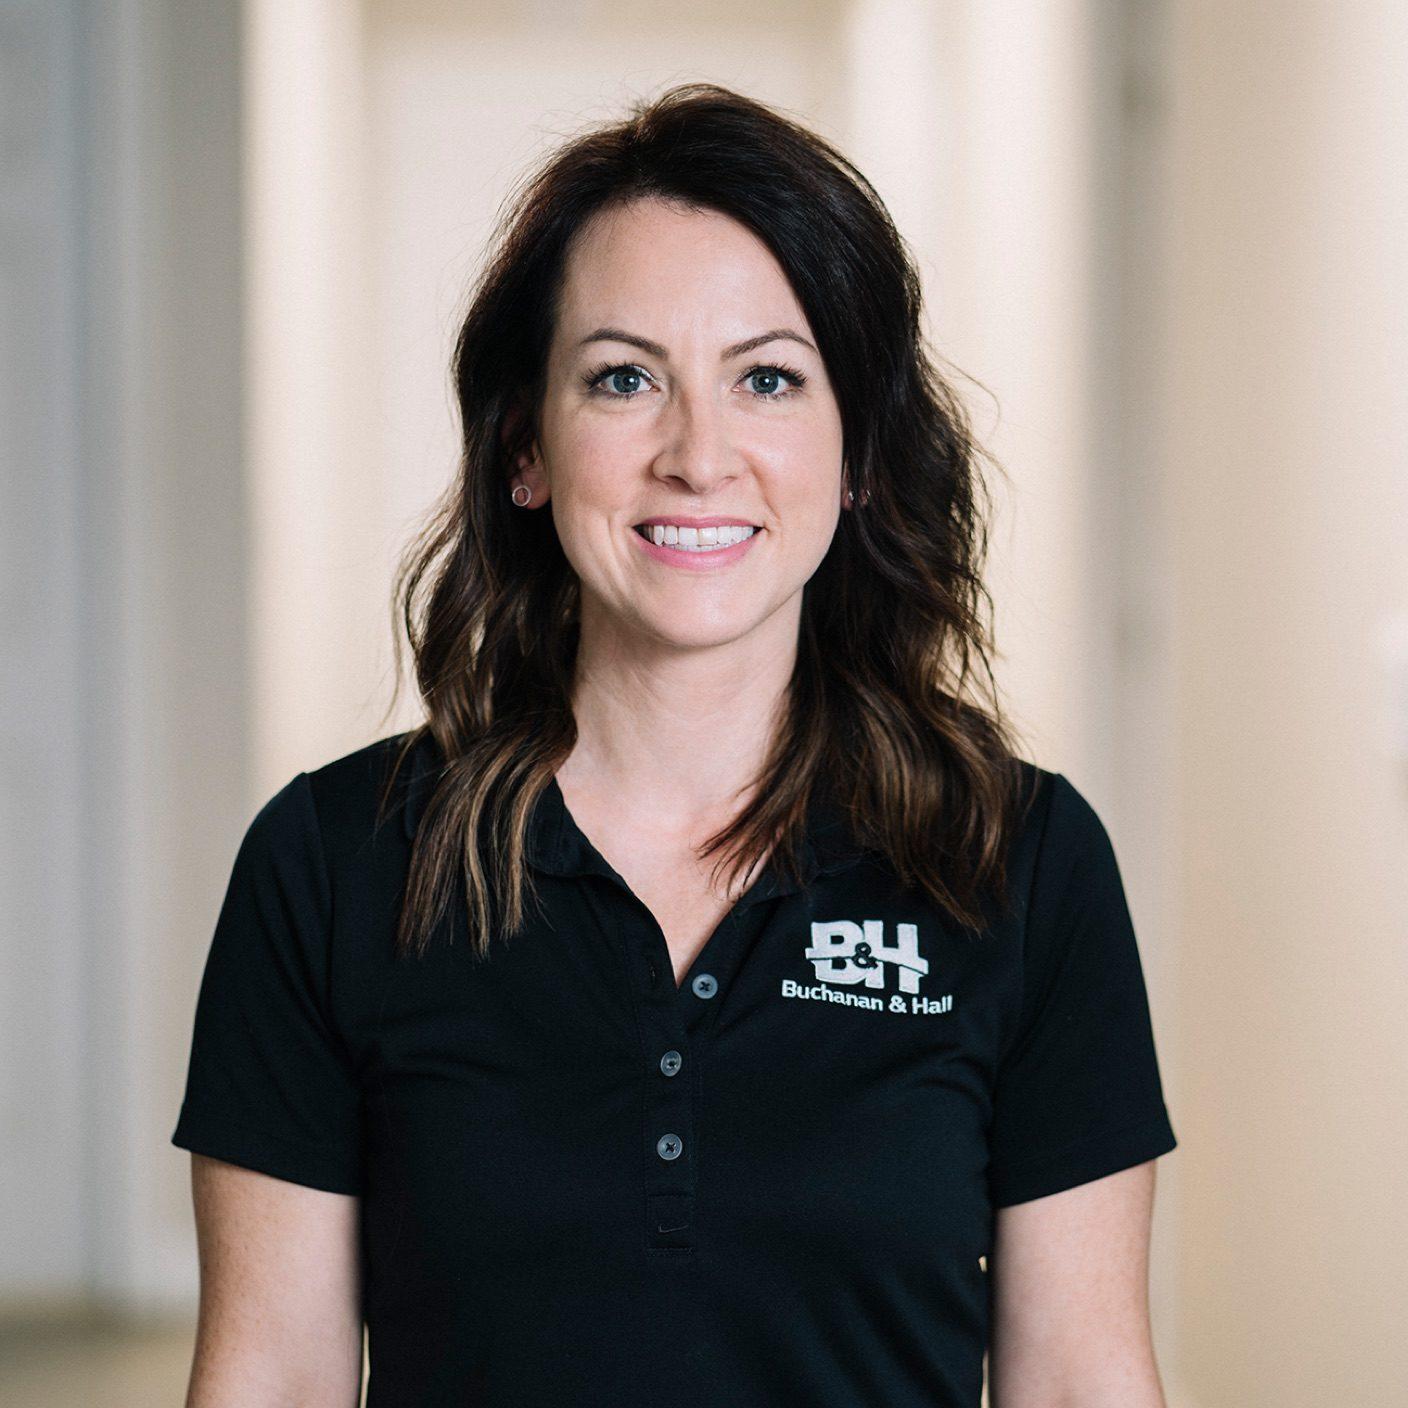 Headshot of a smiling female employee in a dark blue polo shirt, with a BH logo on the one side of her shirt